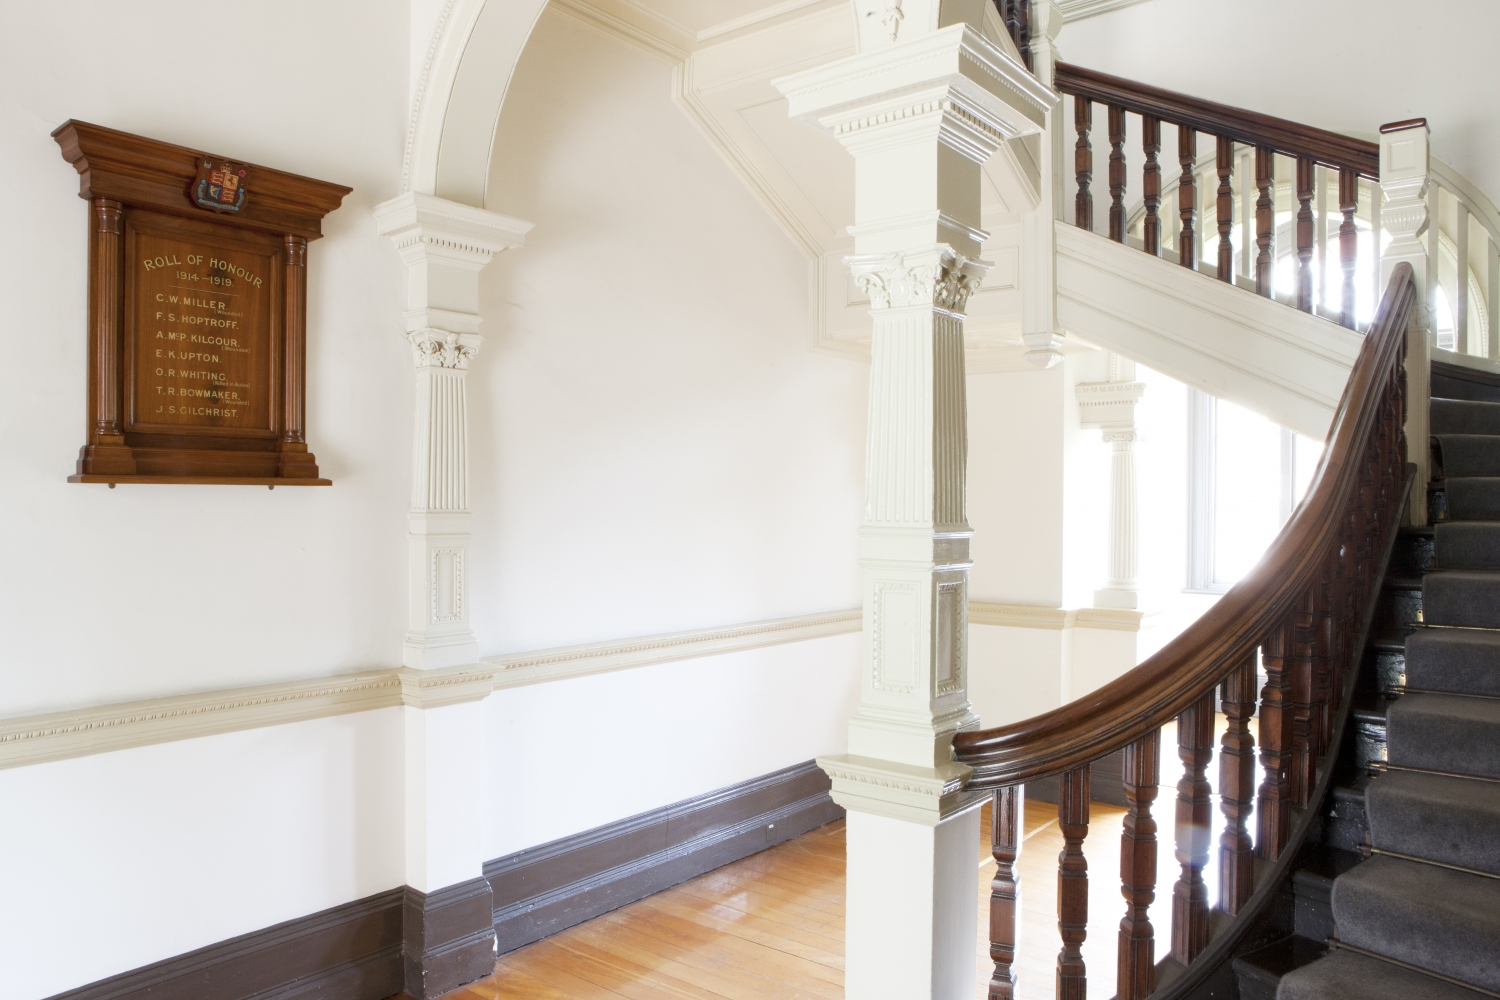 Wooden honour roll on wall with curved staircase to right.